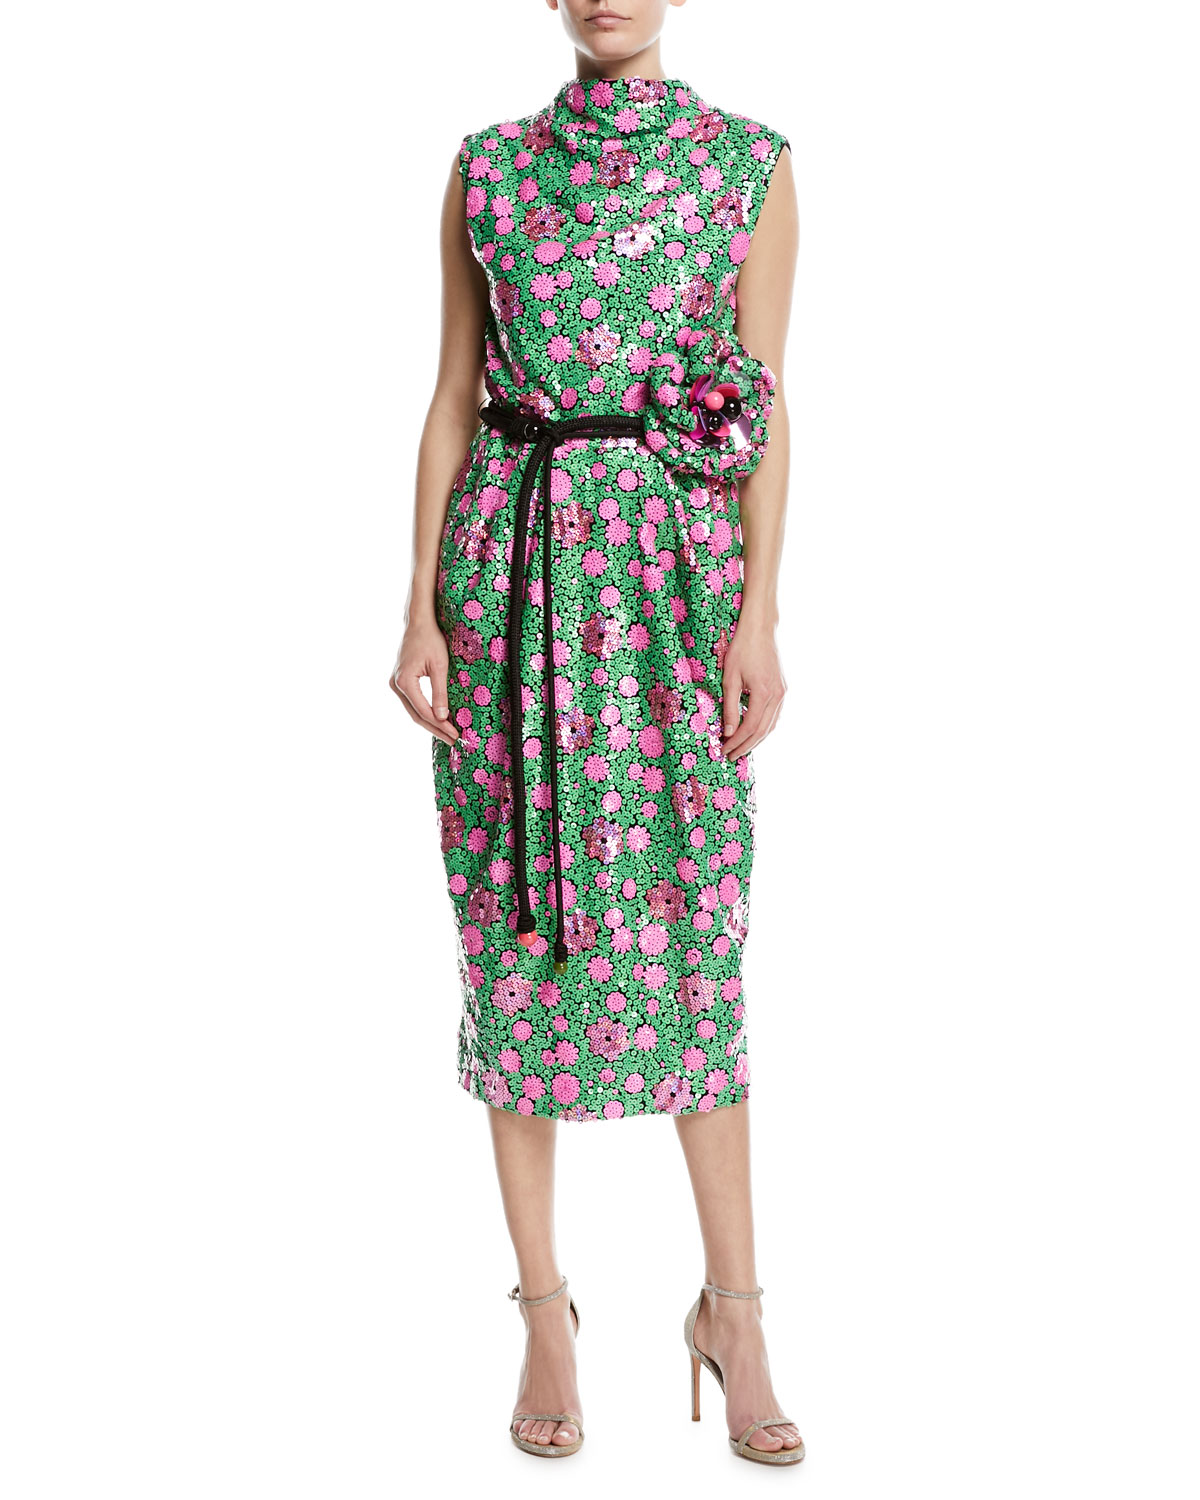 698bd4ad588 Marc Jacobs Sequined Floral Tie-Waist Cocktail Dress